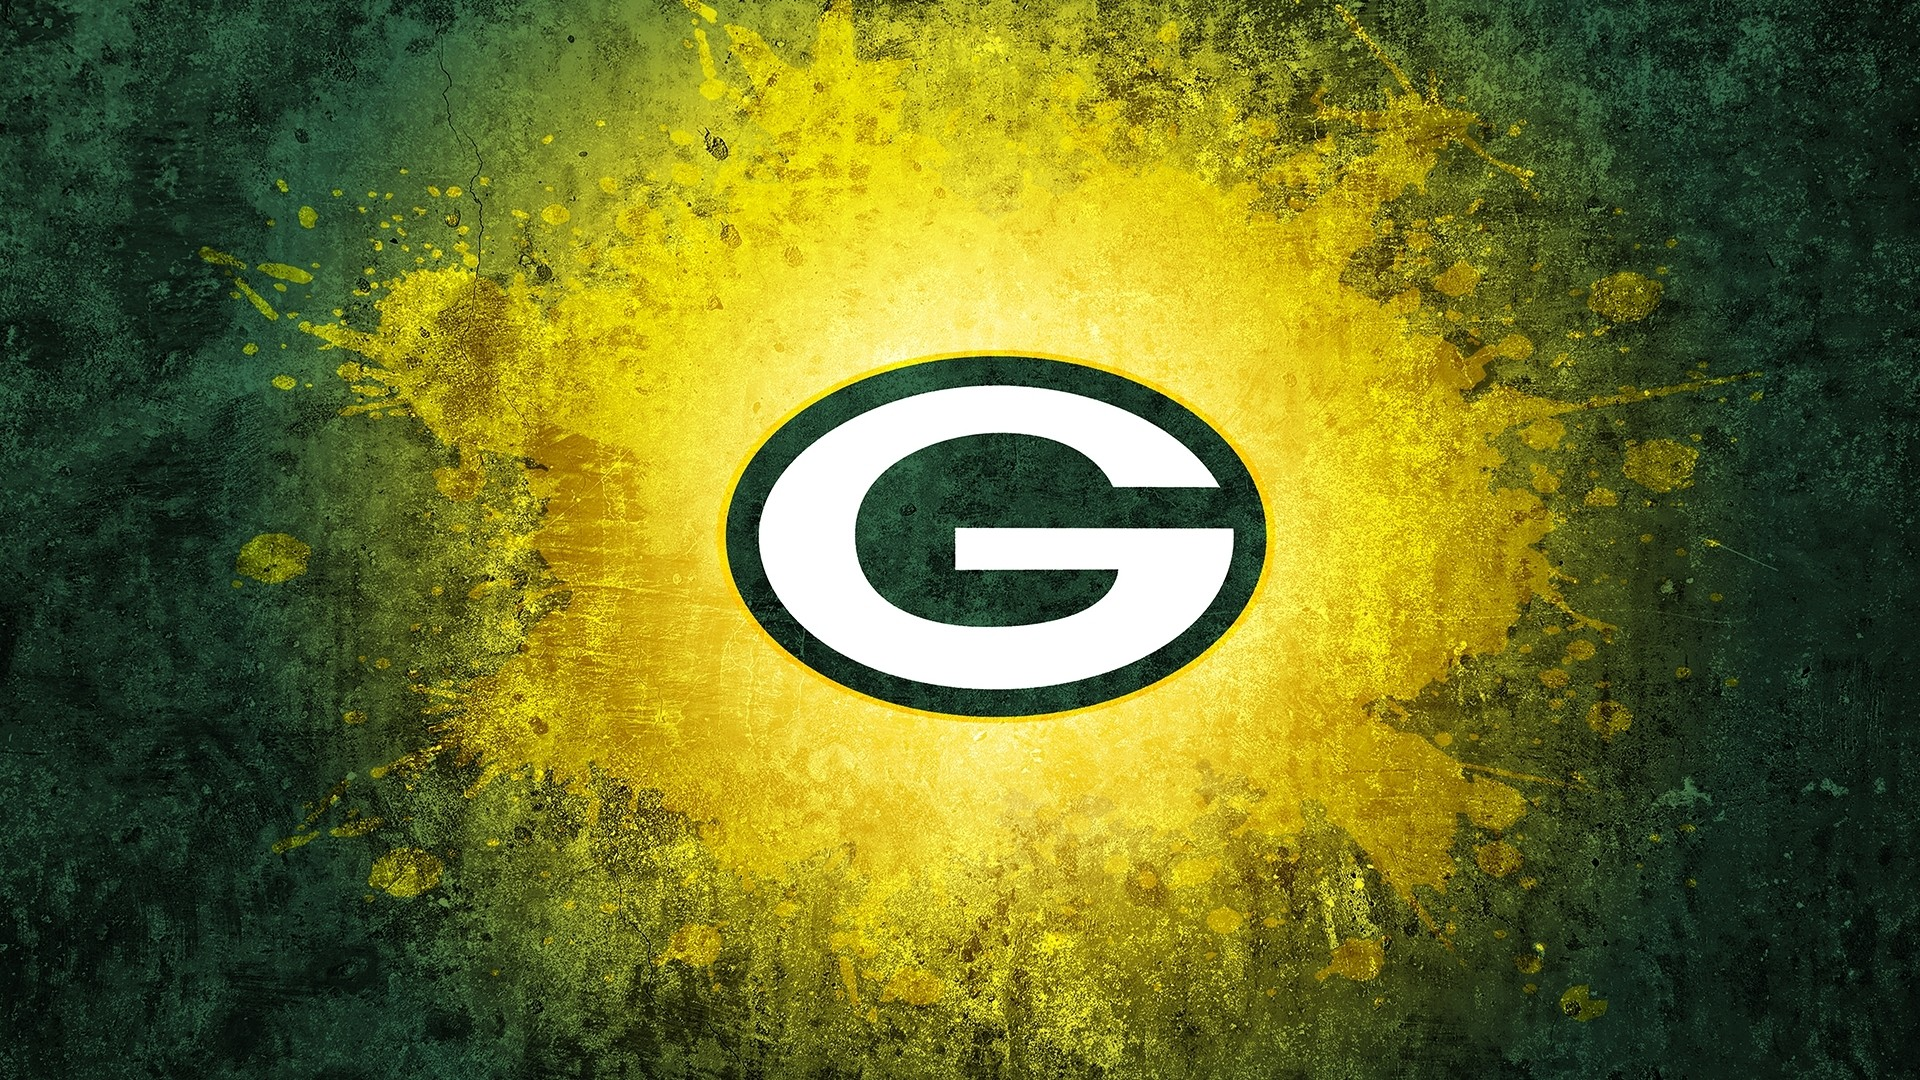 Green Bay Packers Wallpaper and Background